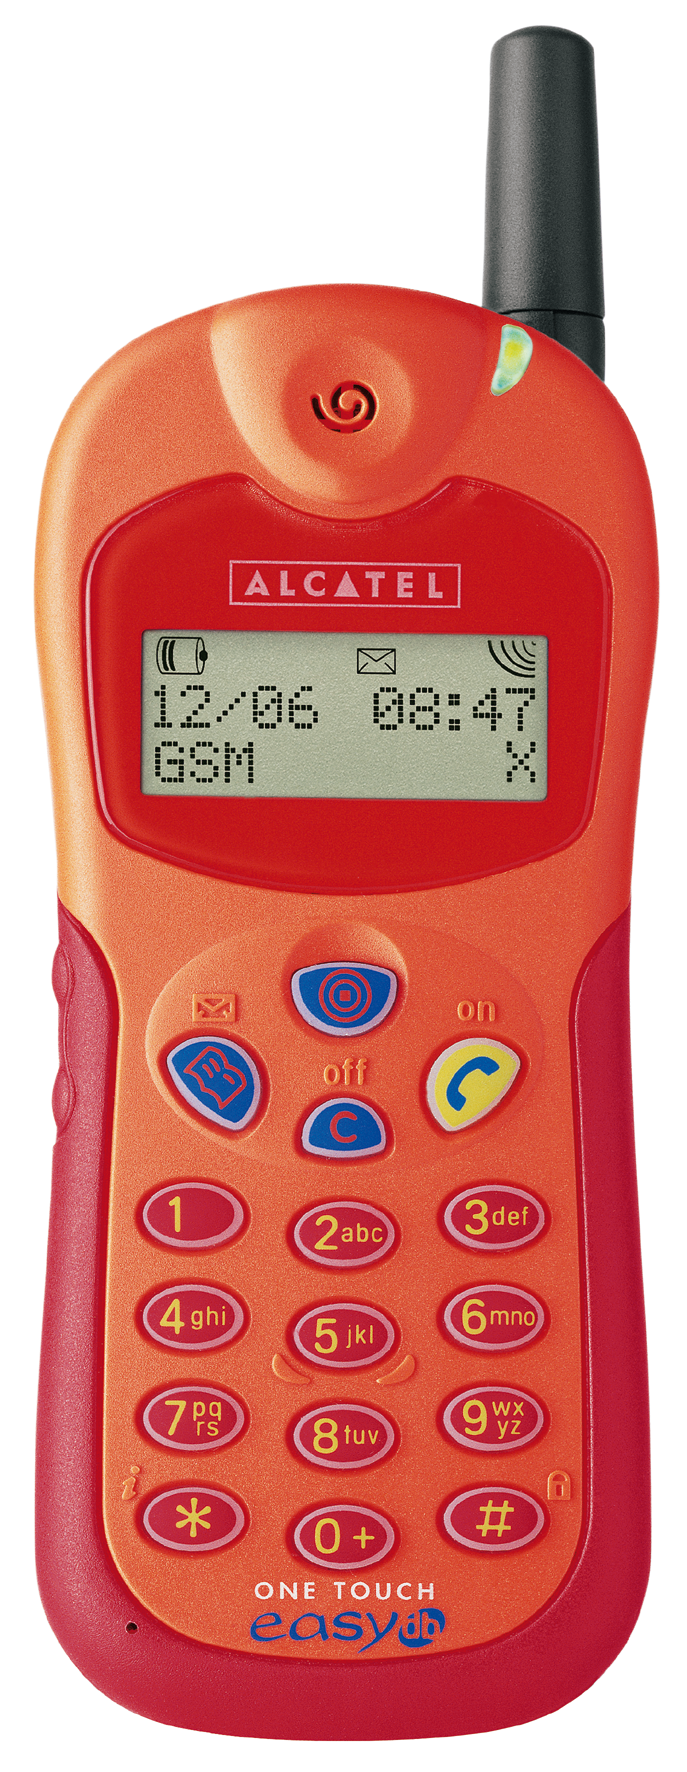 alcatel one touch easy db orange my first mobile phone. Black Bedroom Furniture Sets. Home Design Ideas